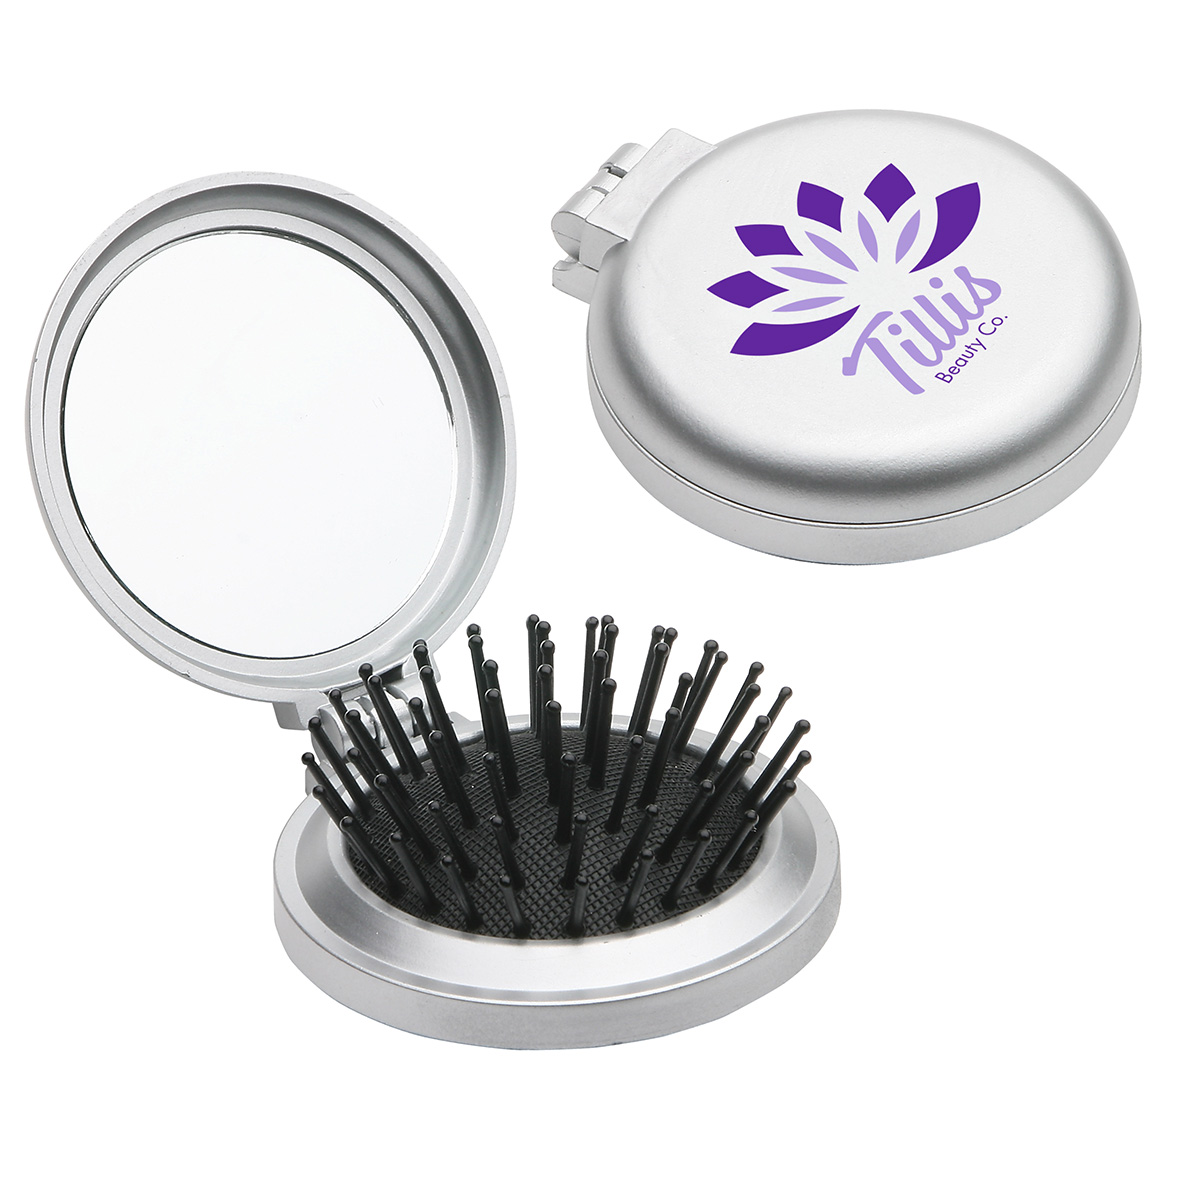 Travel Disk Brush & Mirror, WTV-TD10, 1 Colour Imprint